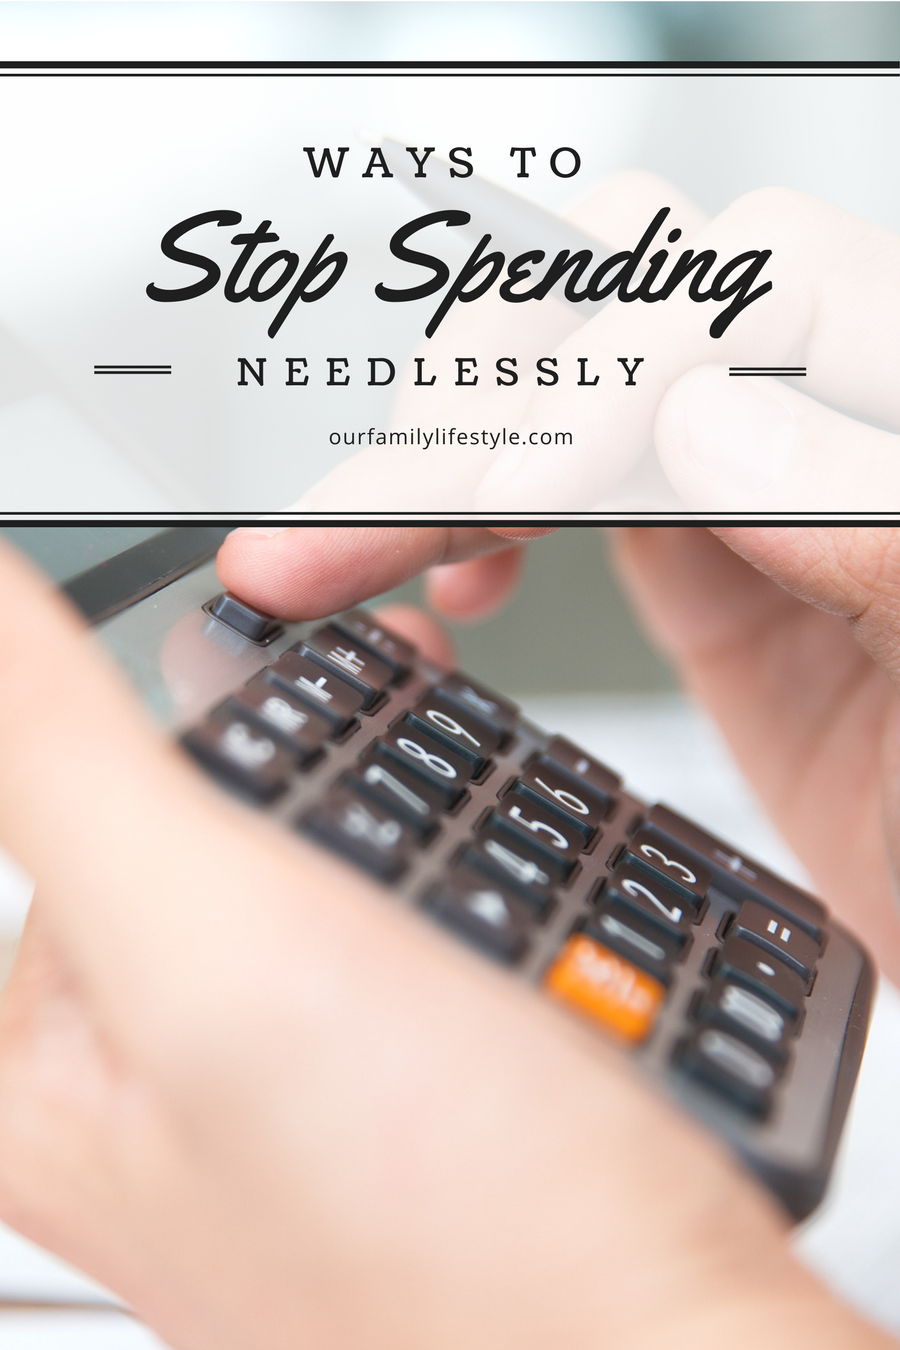 Ways to Stop Spending Needlessly